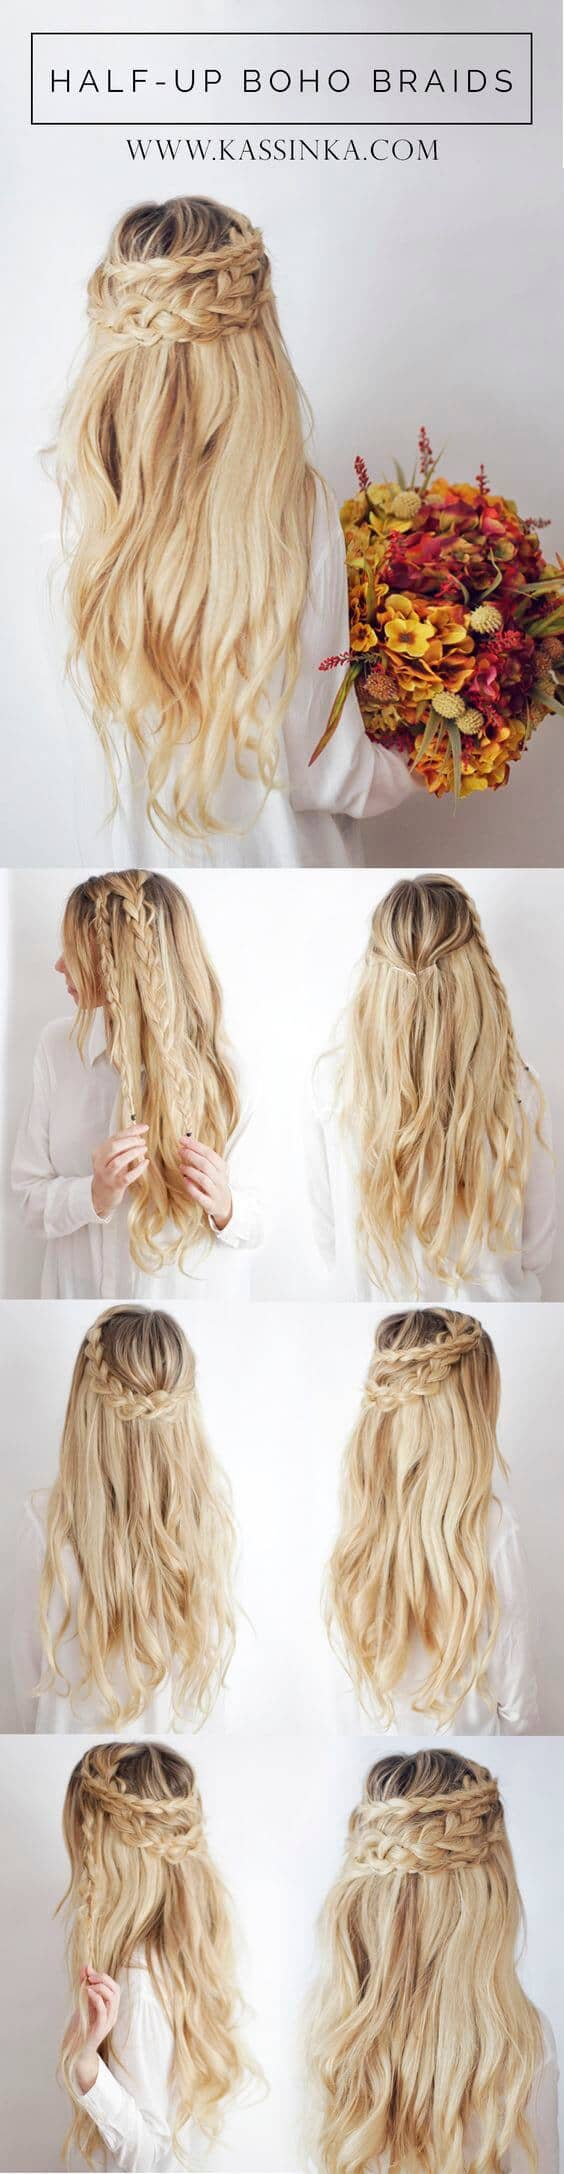 Boho Crown Braid